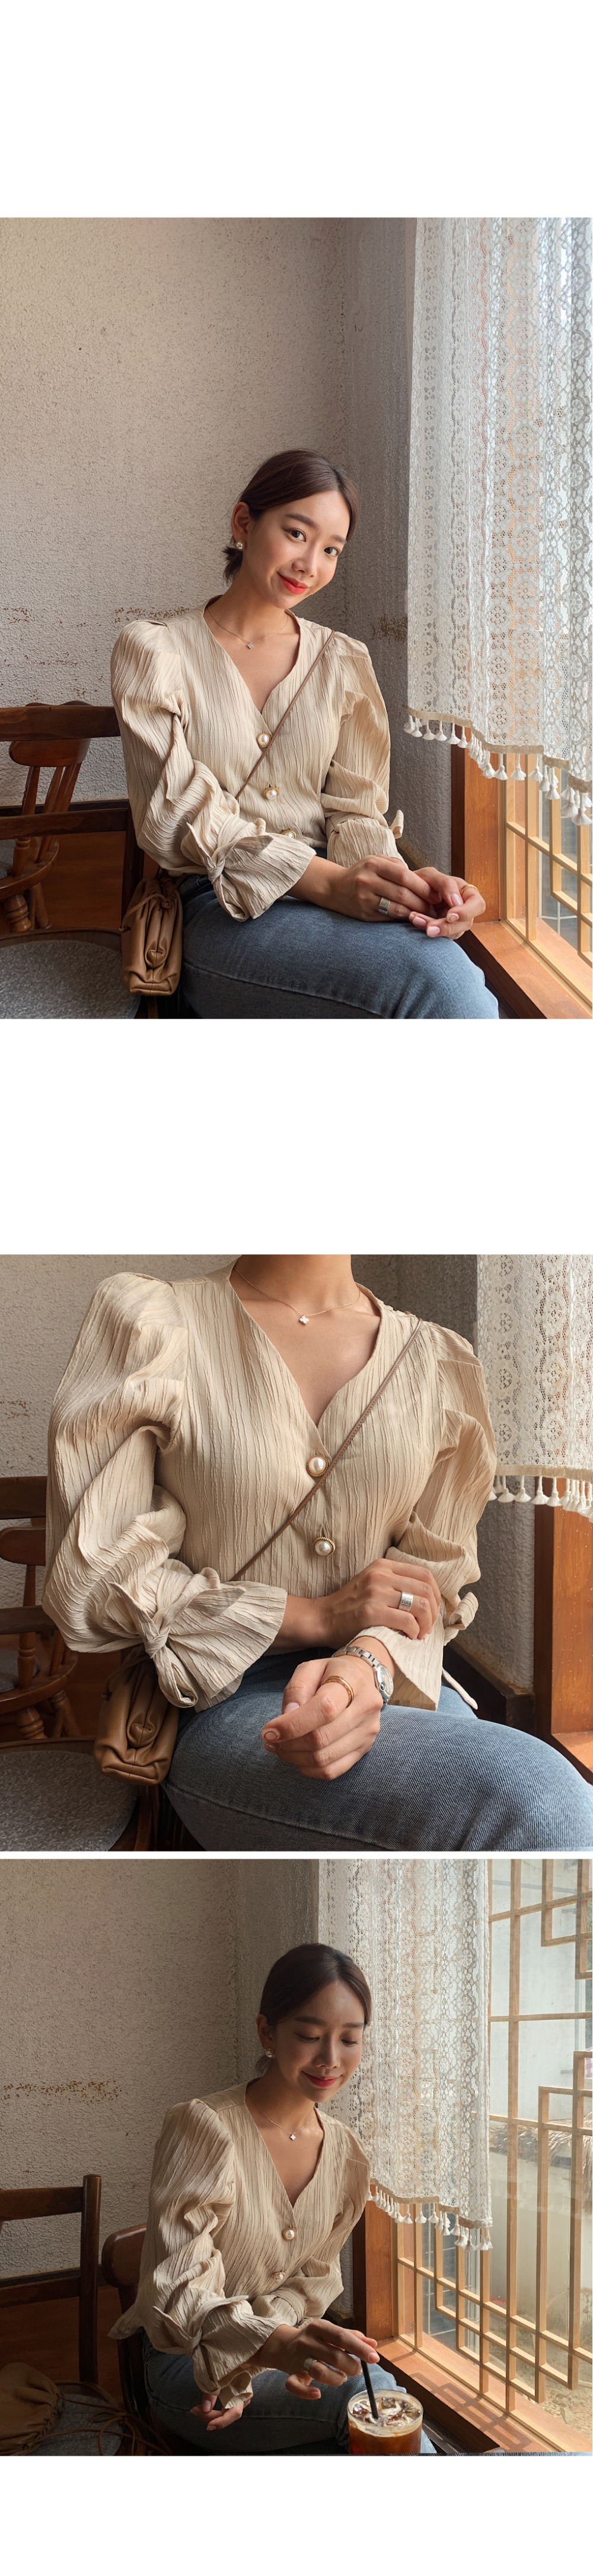 H644898f0f7e94f19afd9927938329c627 - Spring / Autumn Korean Long Sleeves Pearl Buttons Solid Blouse